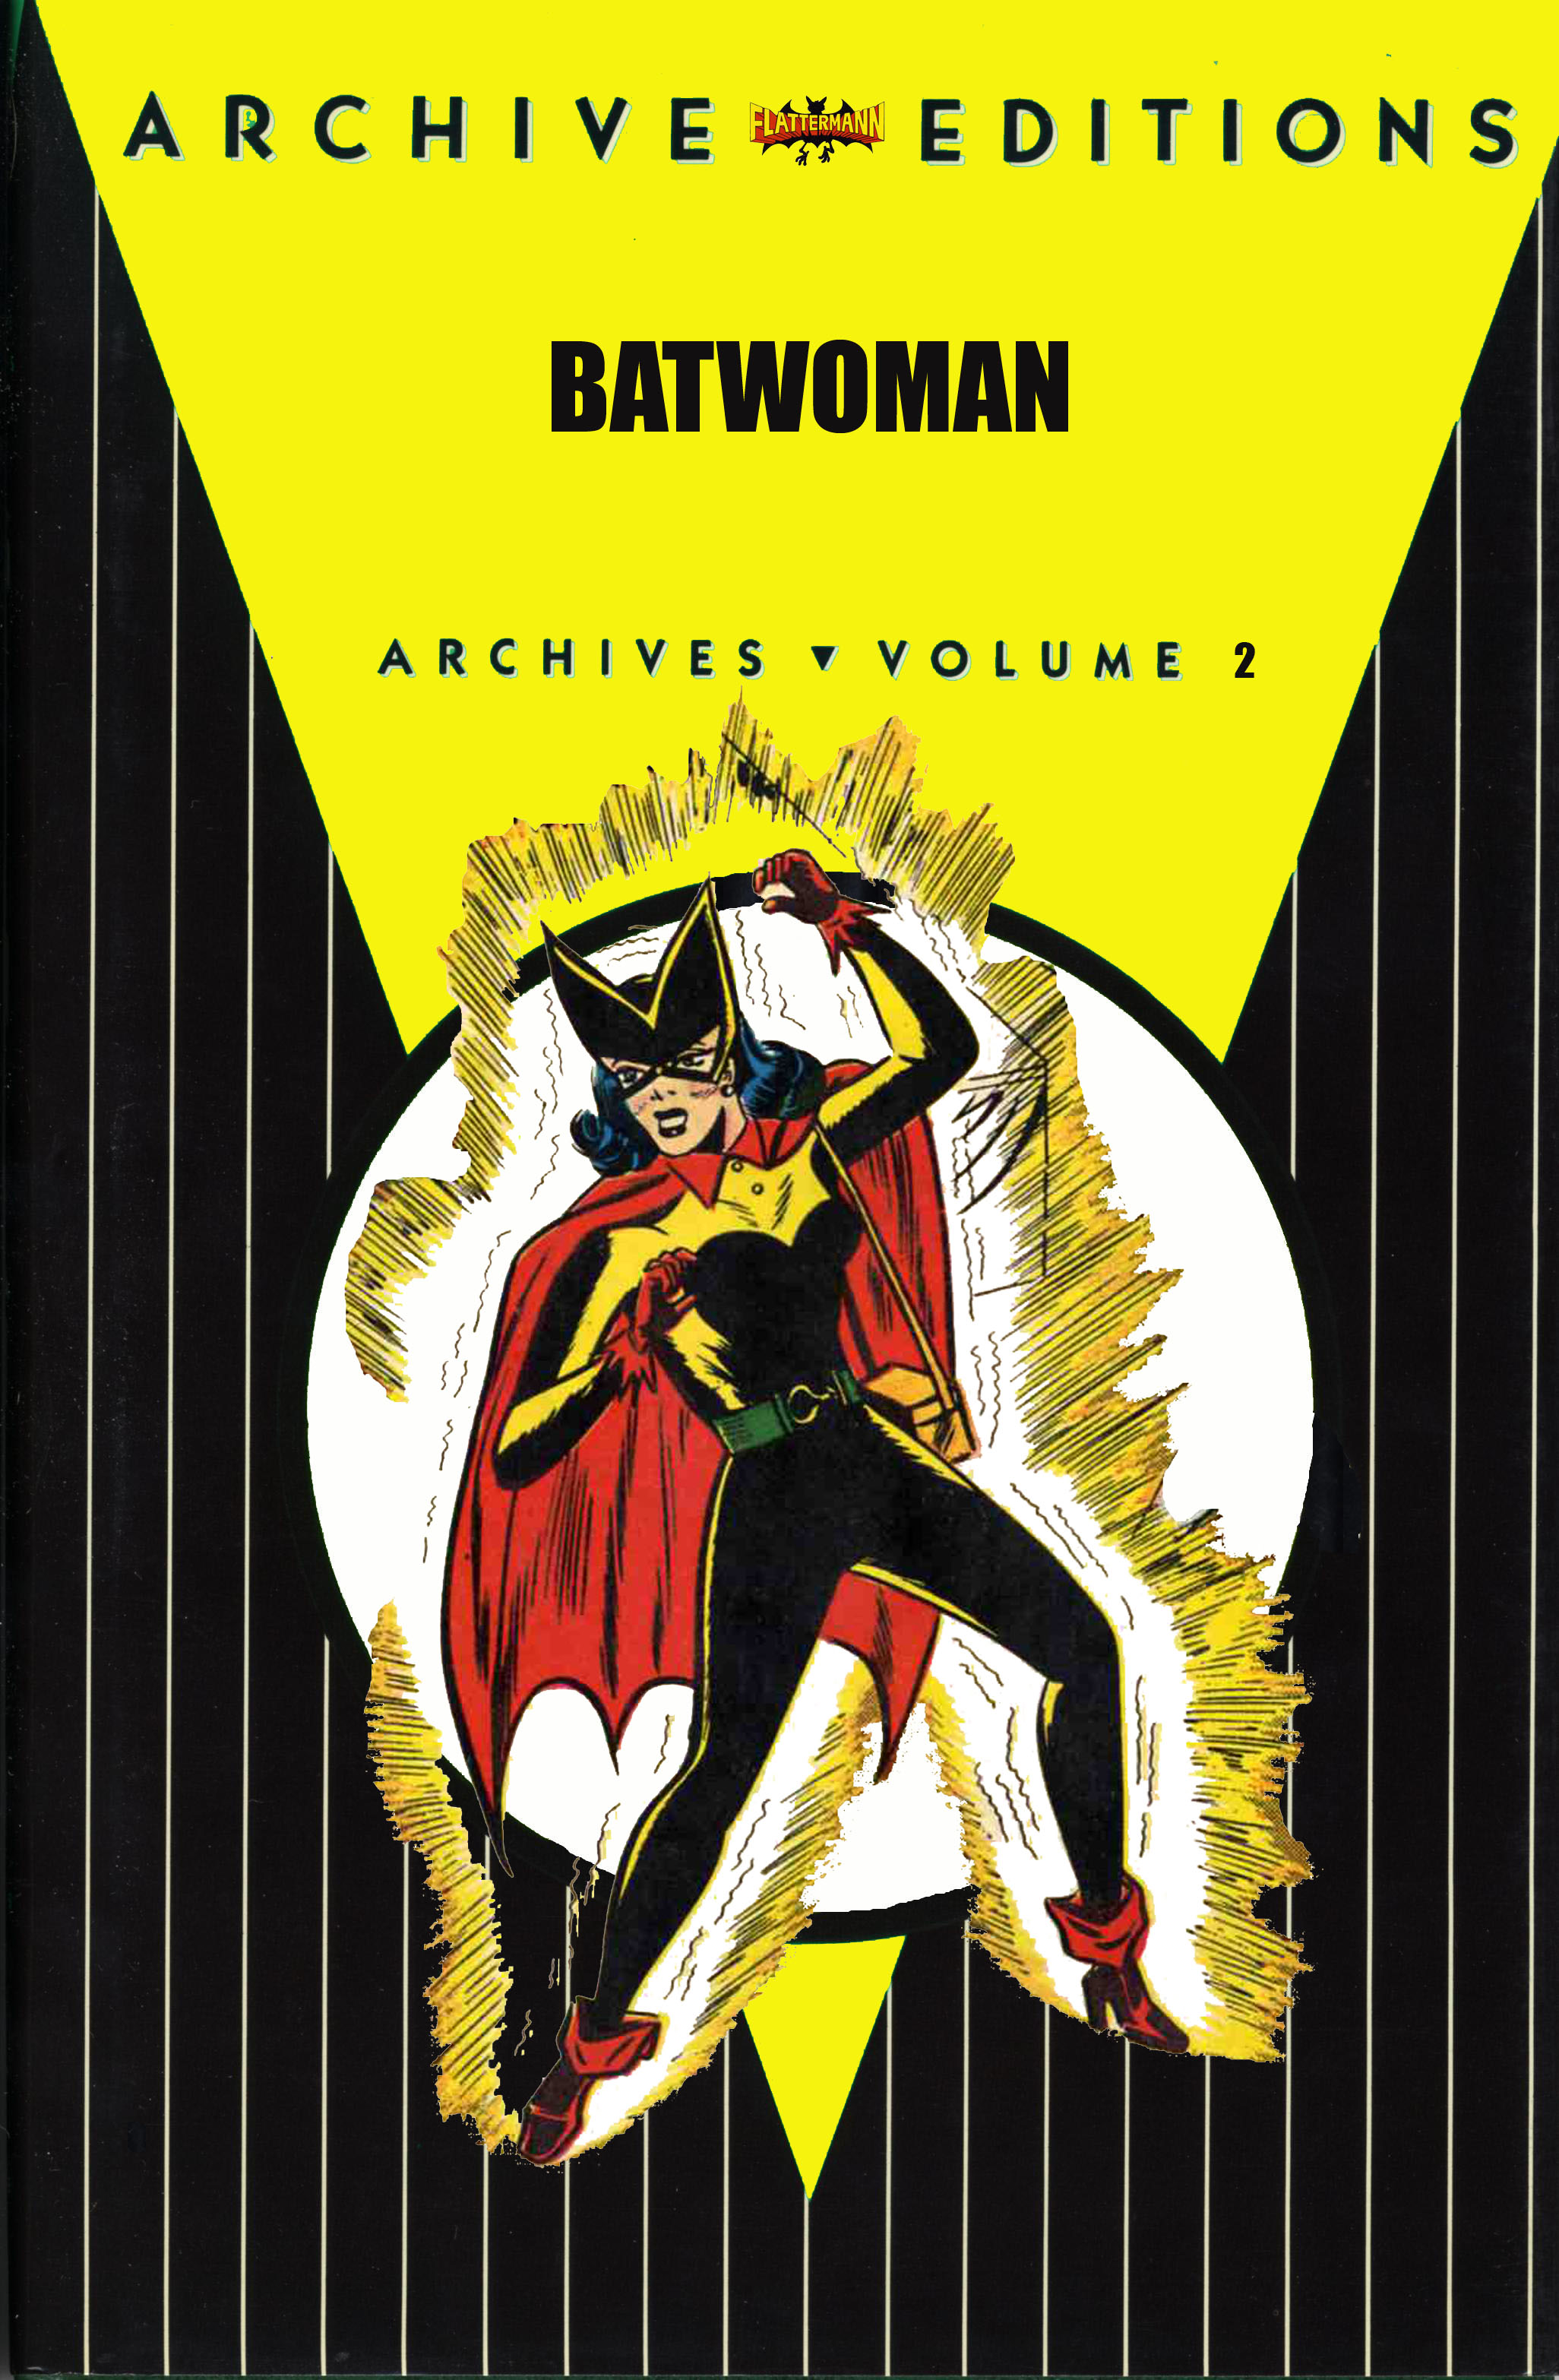 Batwoman Archives Editions Volume 2